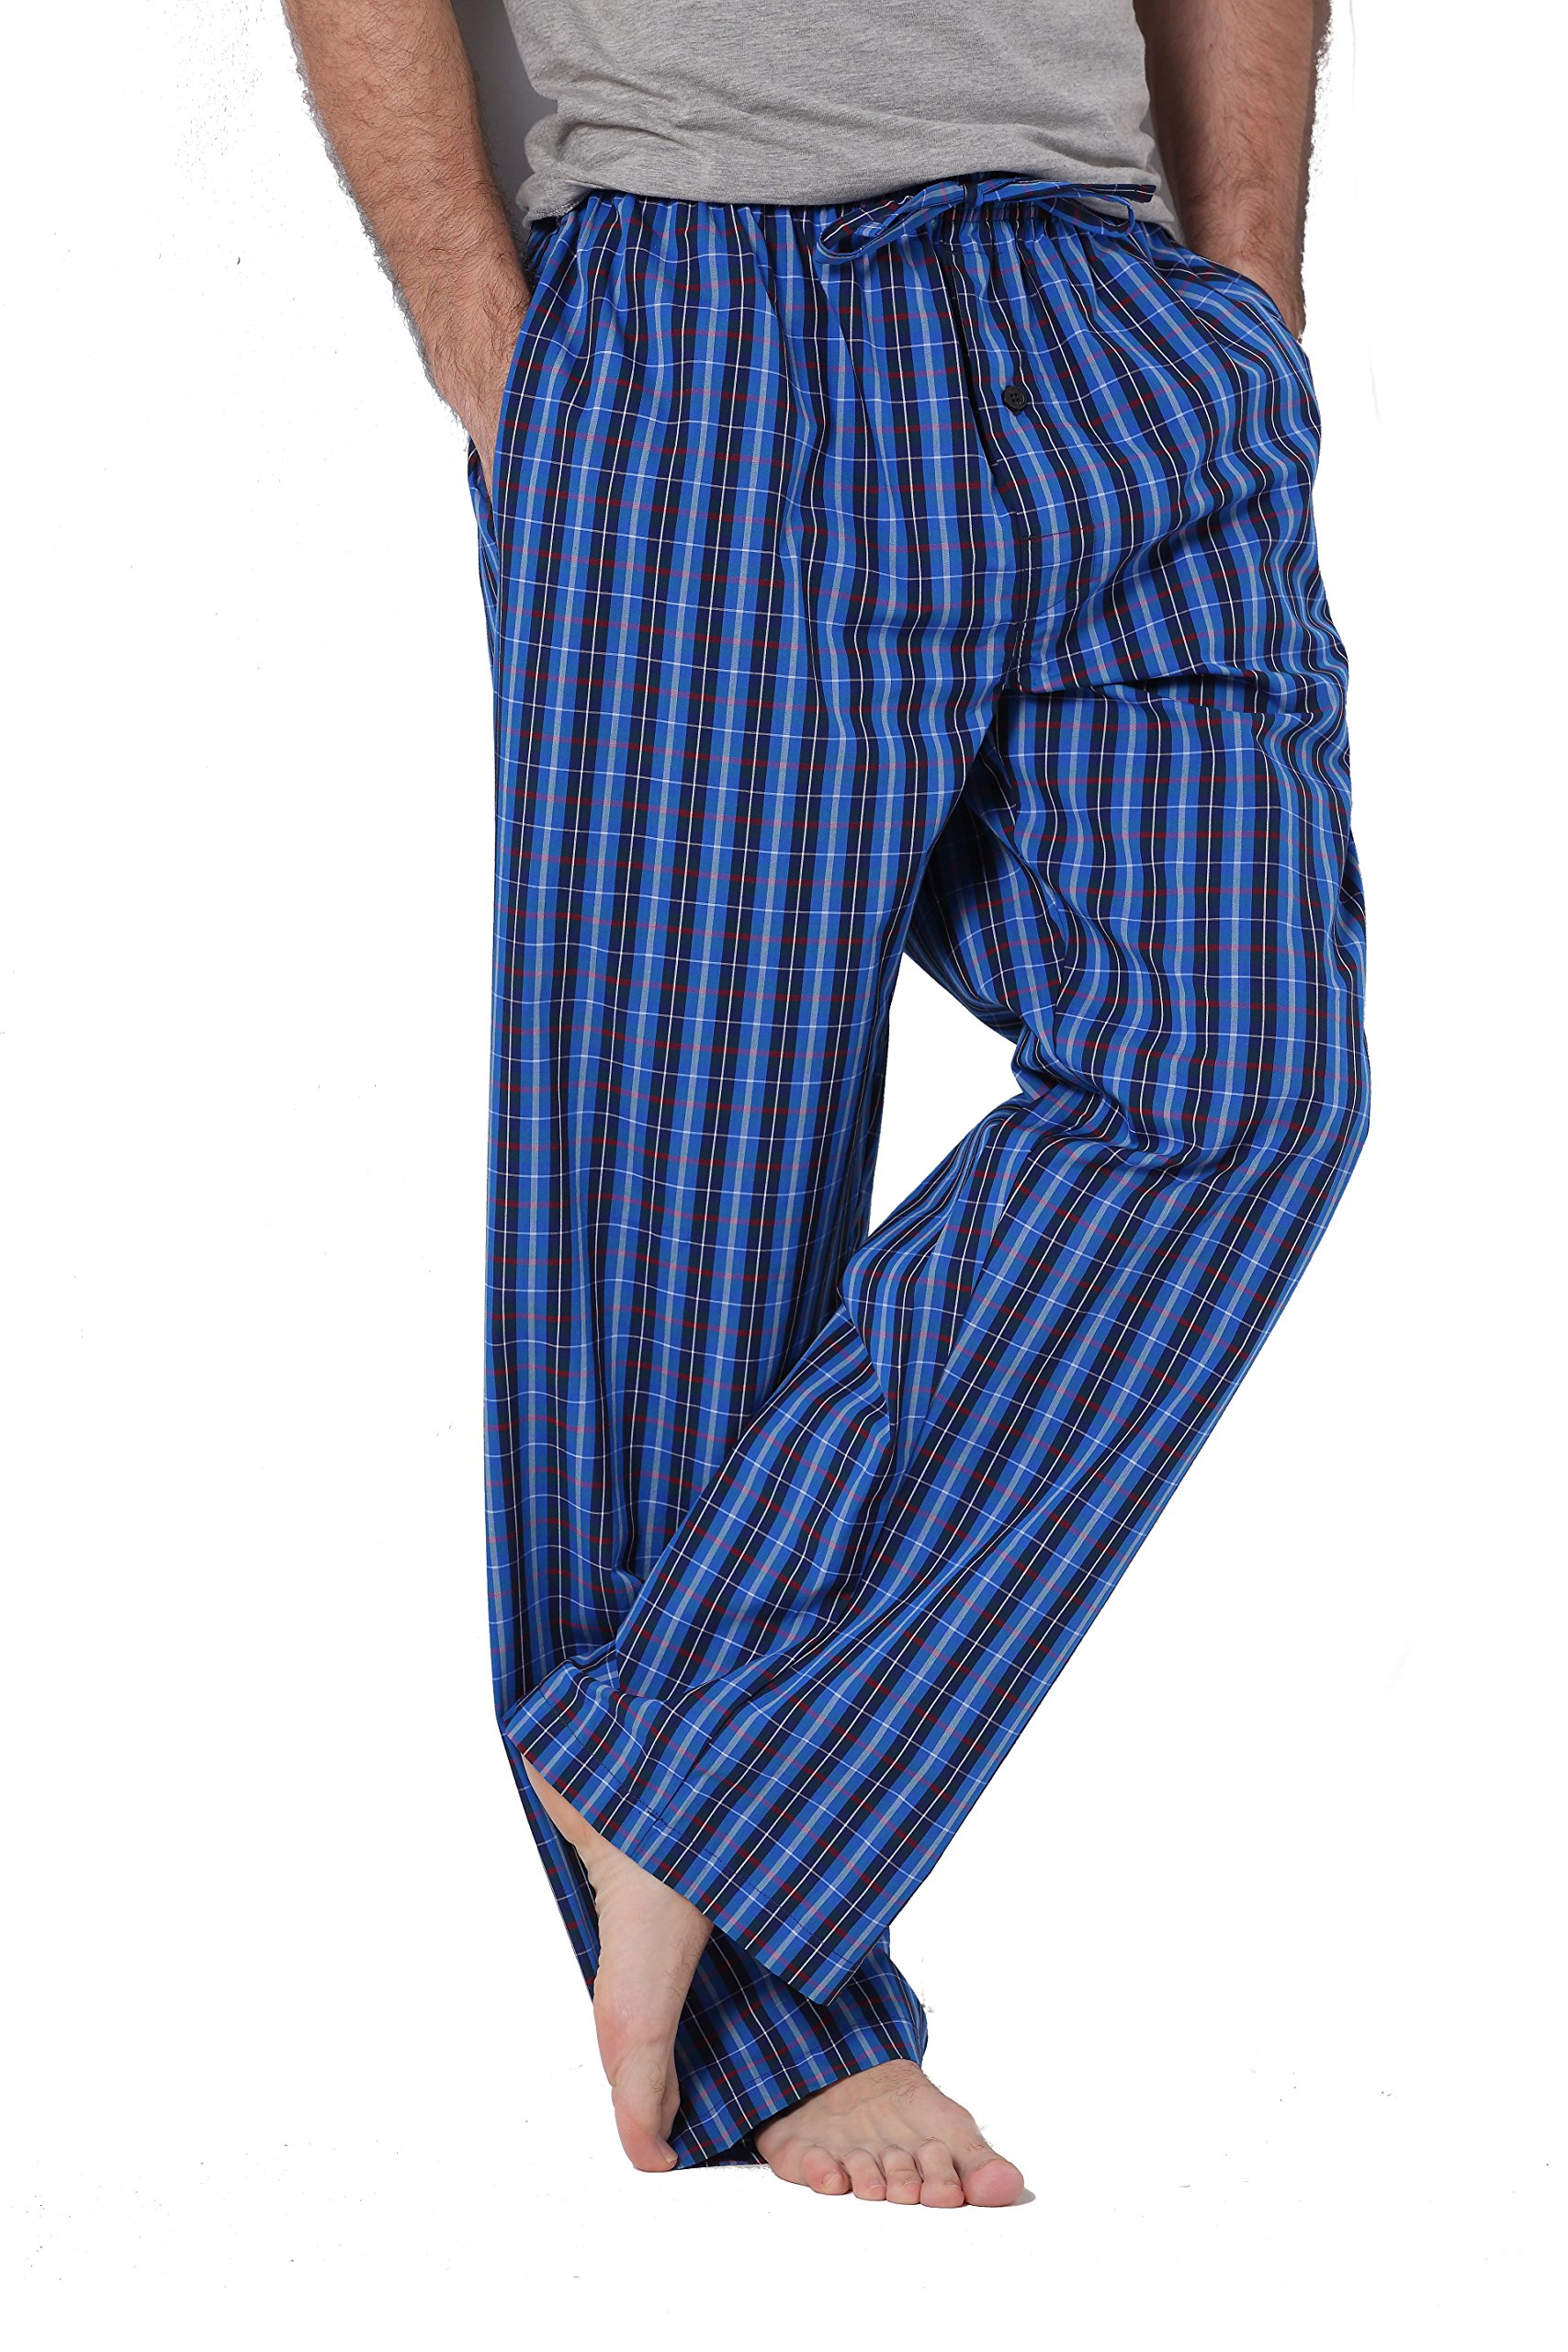 CYZ Men's 100% Cotton Poplin Pajama Lounge Sleep Pant-P17004-M